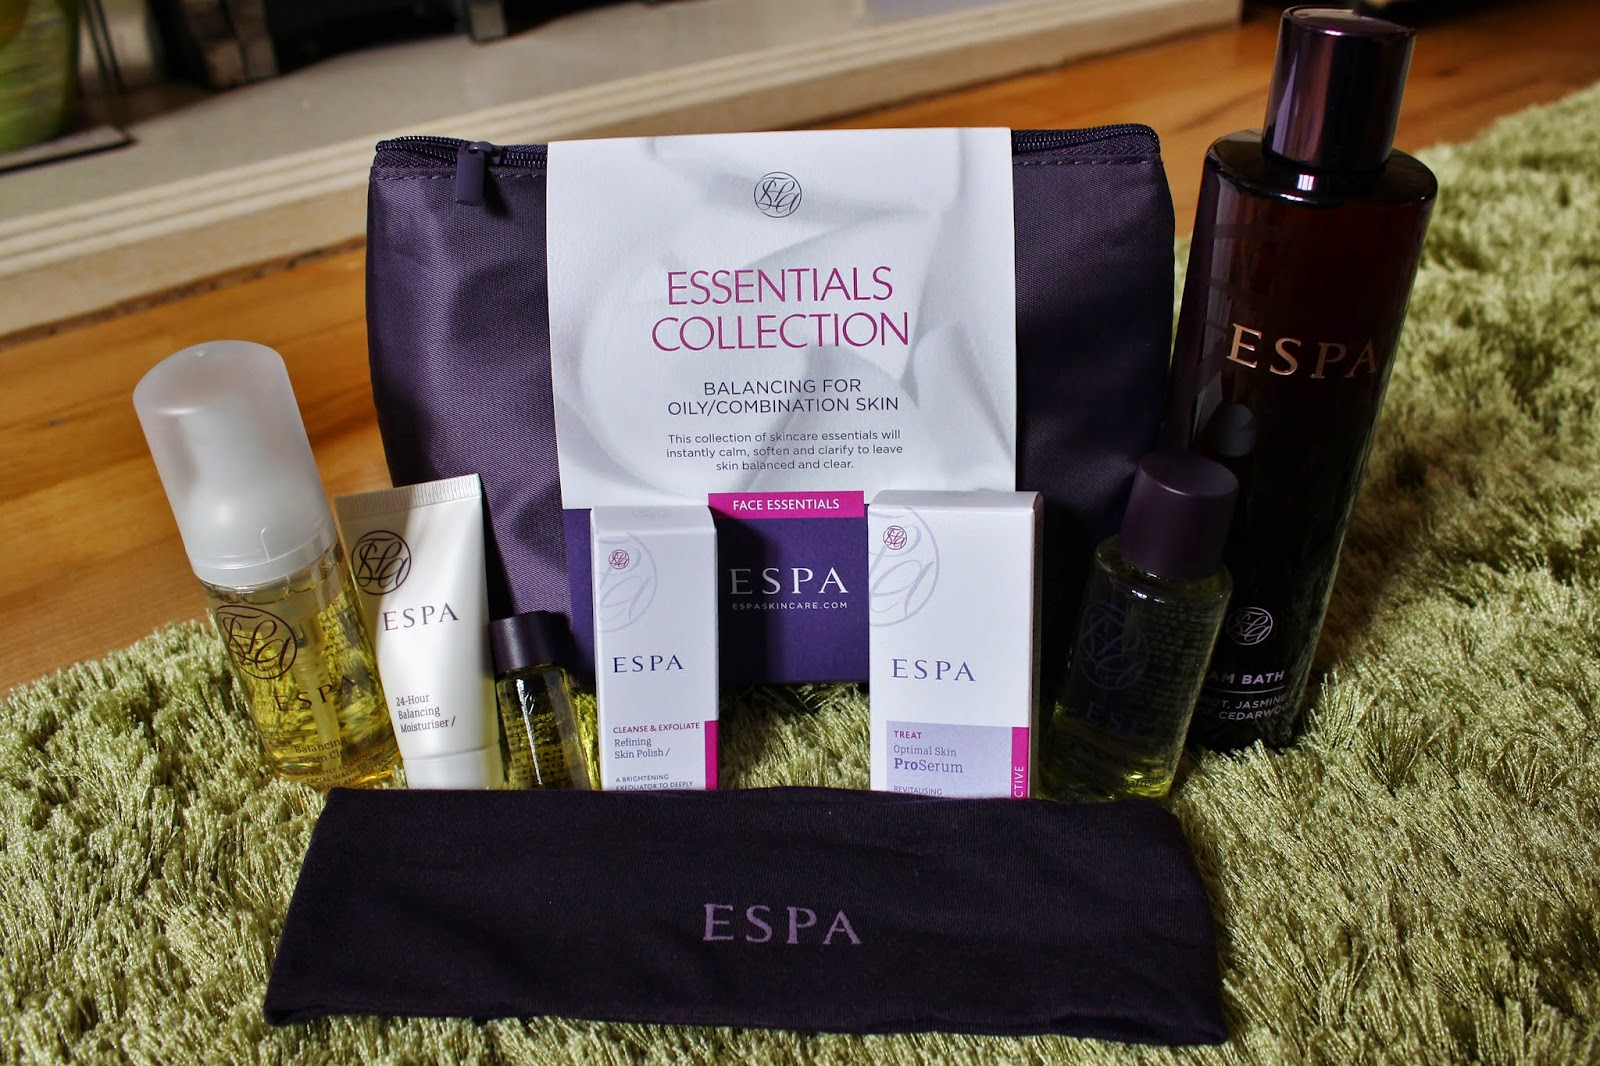 ESPA Essentials Collection